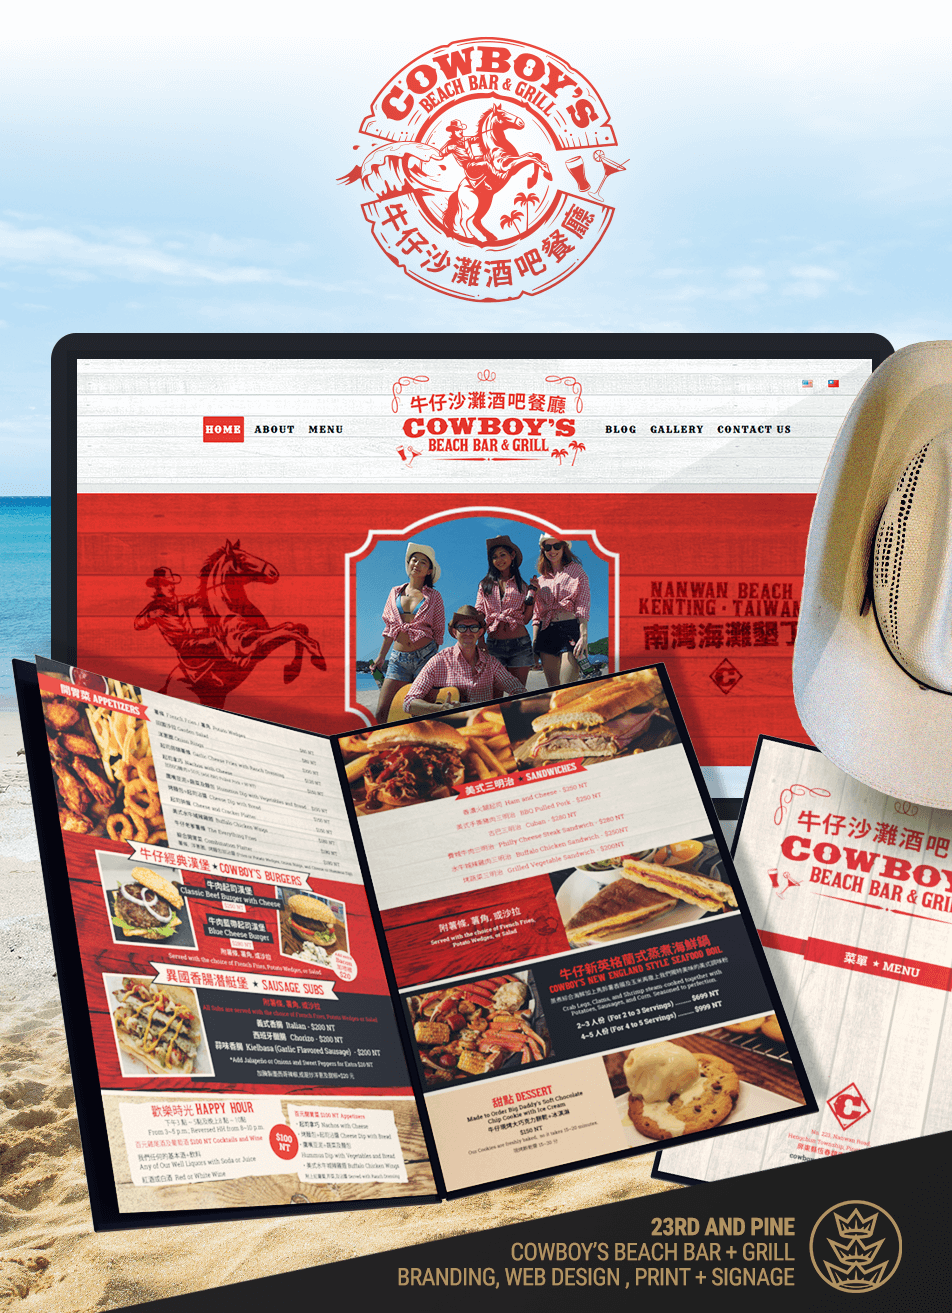 Web Site and Menu Images for Cowboy's Beach Bar and Grill